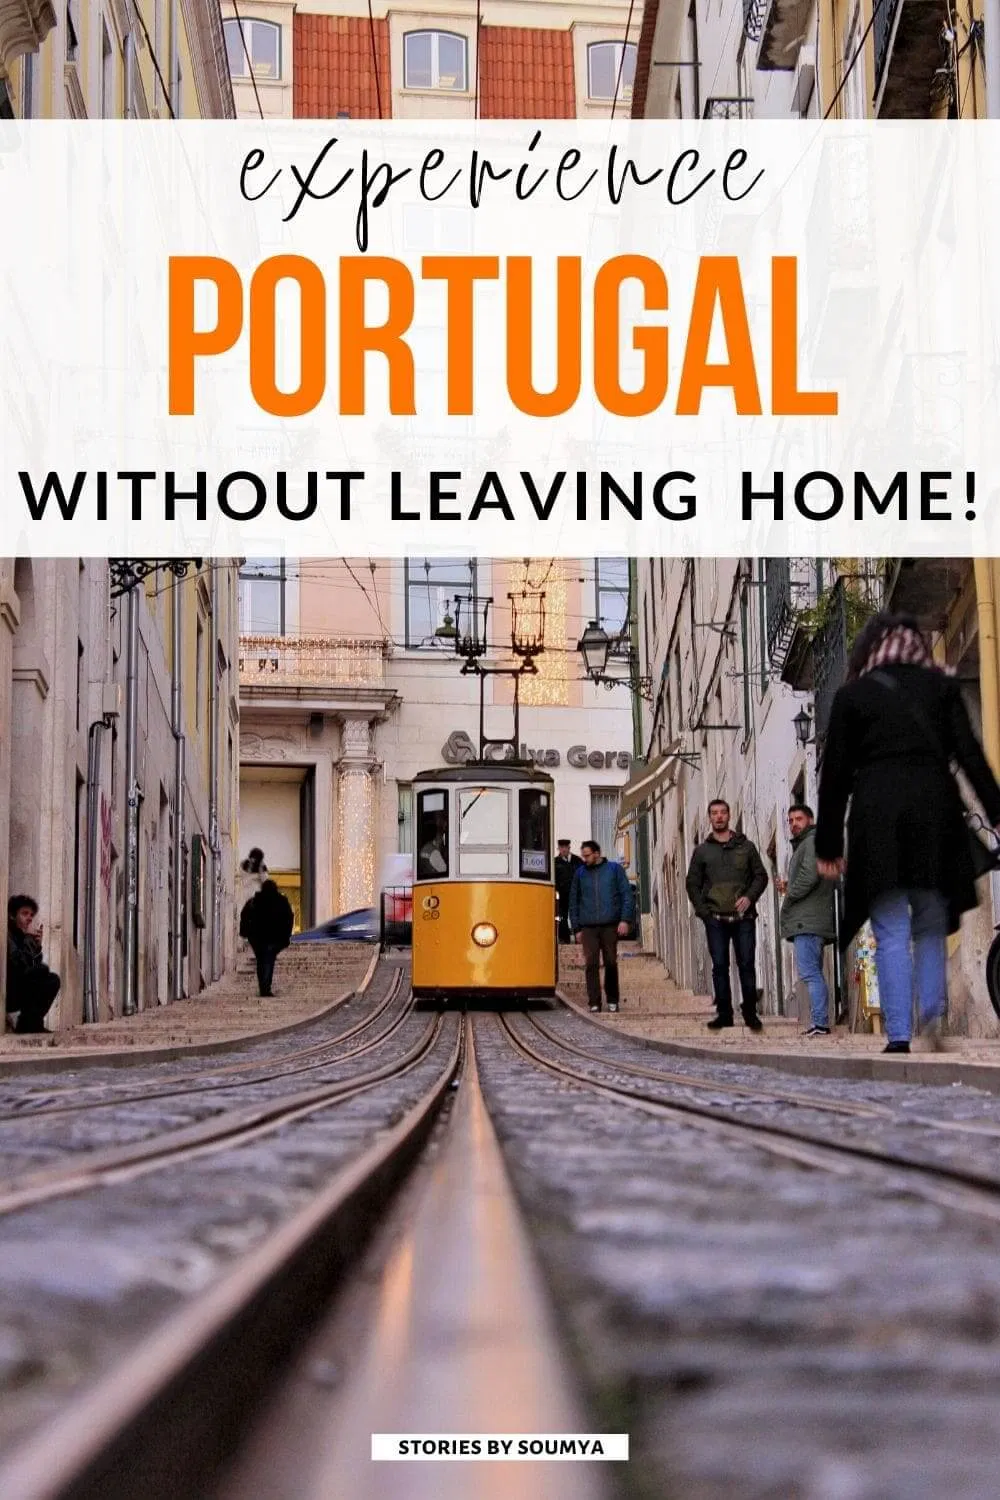 How To Virtually Travel To Portugal From Home - STORIES BY SOUMYA